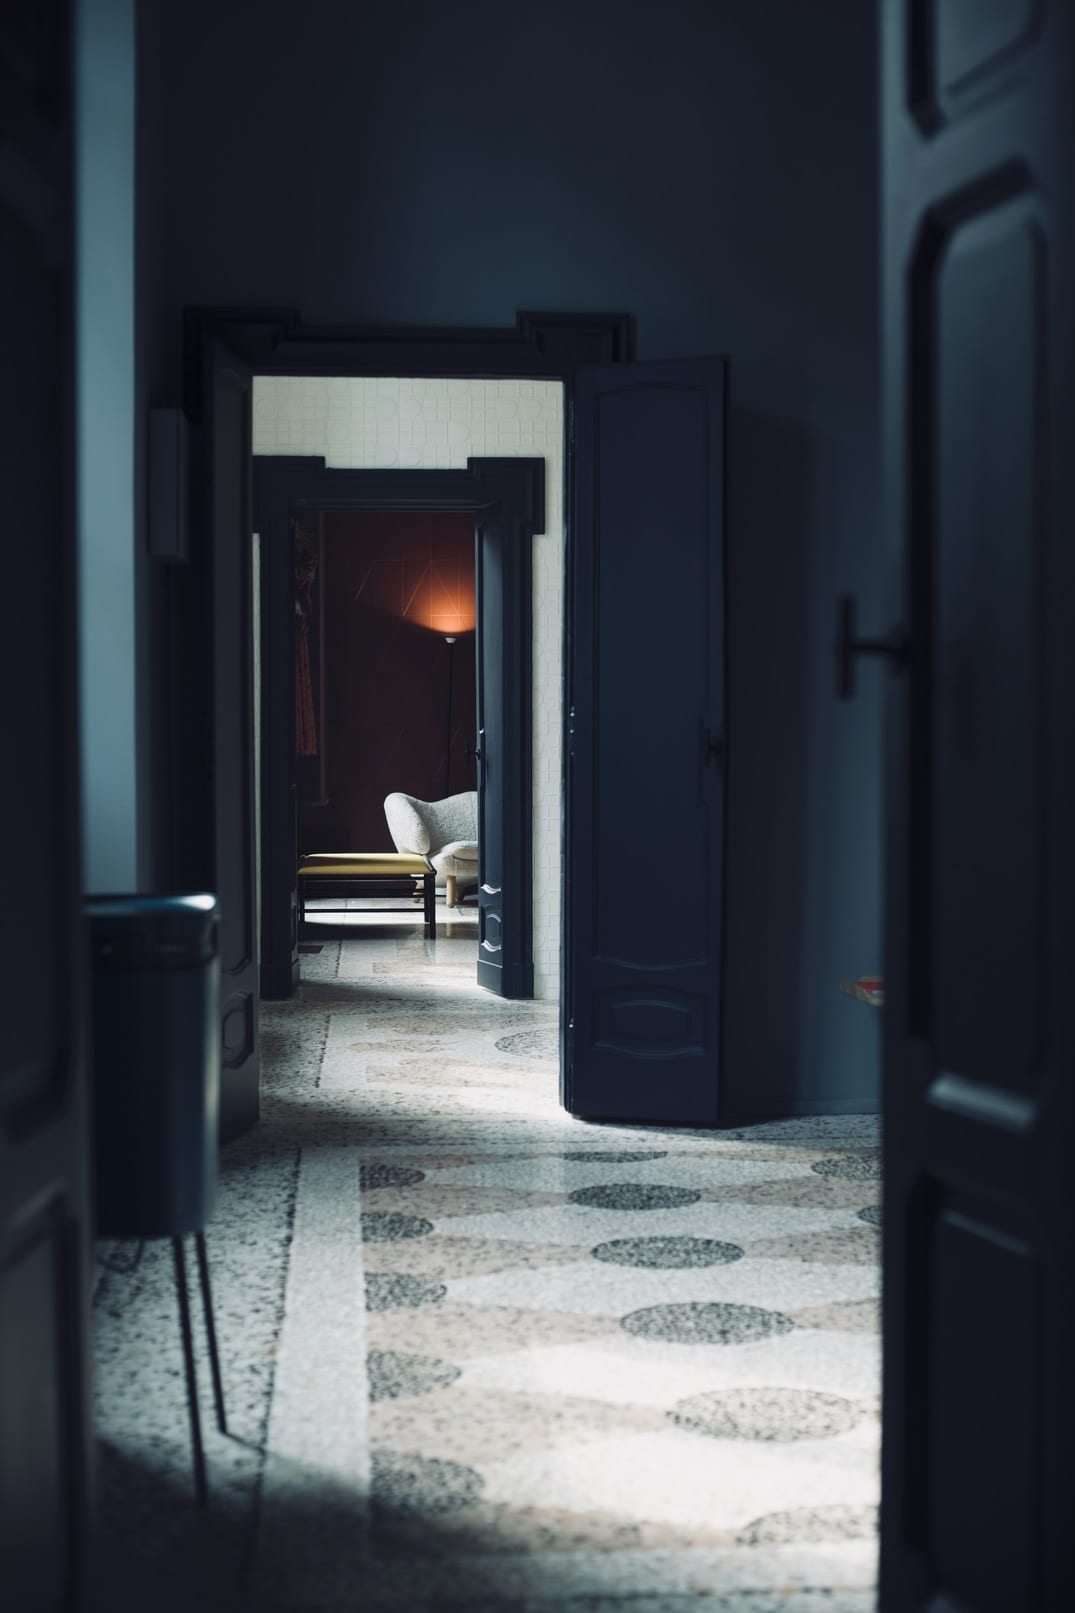 Perfect Darkness Apartment Installation By Elisa Ossino And Josephine Akvama Hoffmeyer Milan Design Week 2019 Yellowtrace 16